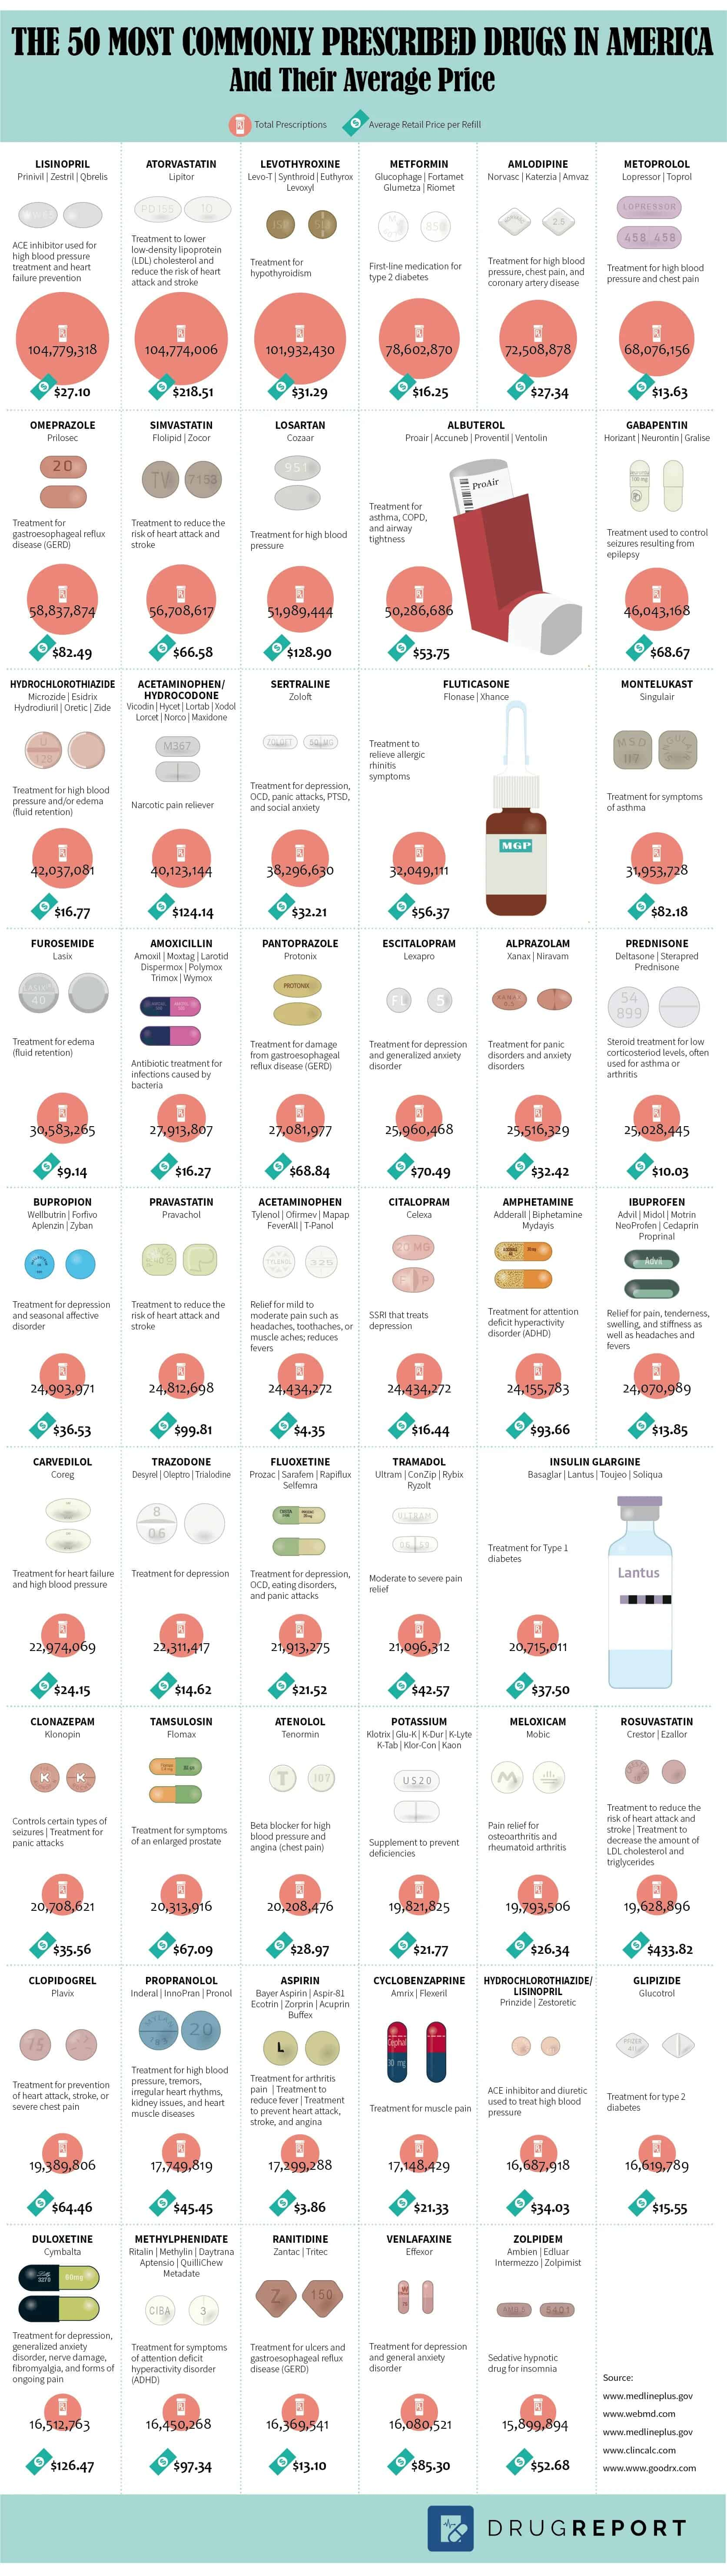 The 50 Most-Prescribed Drugs in America and How Much They Cost